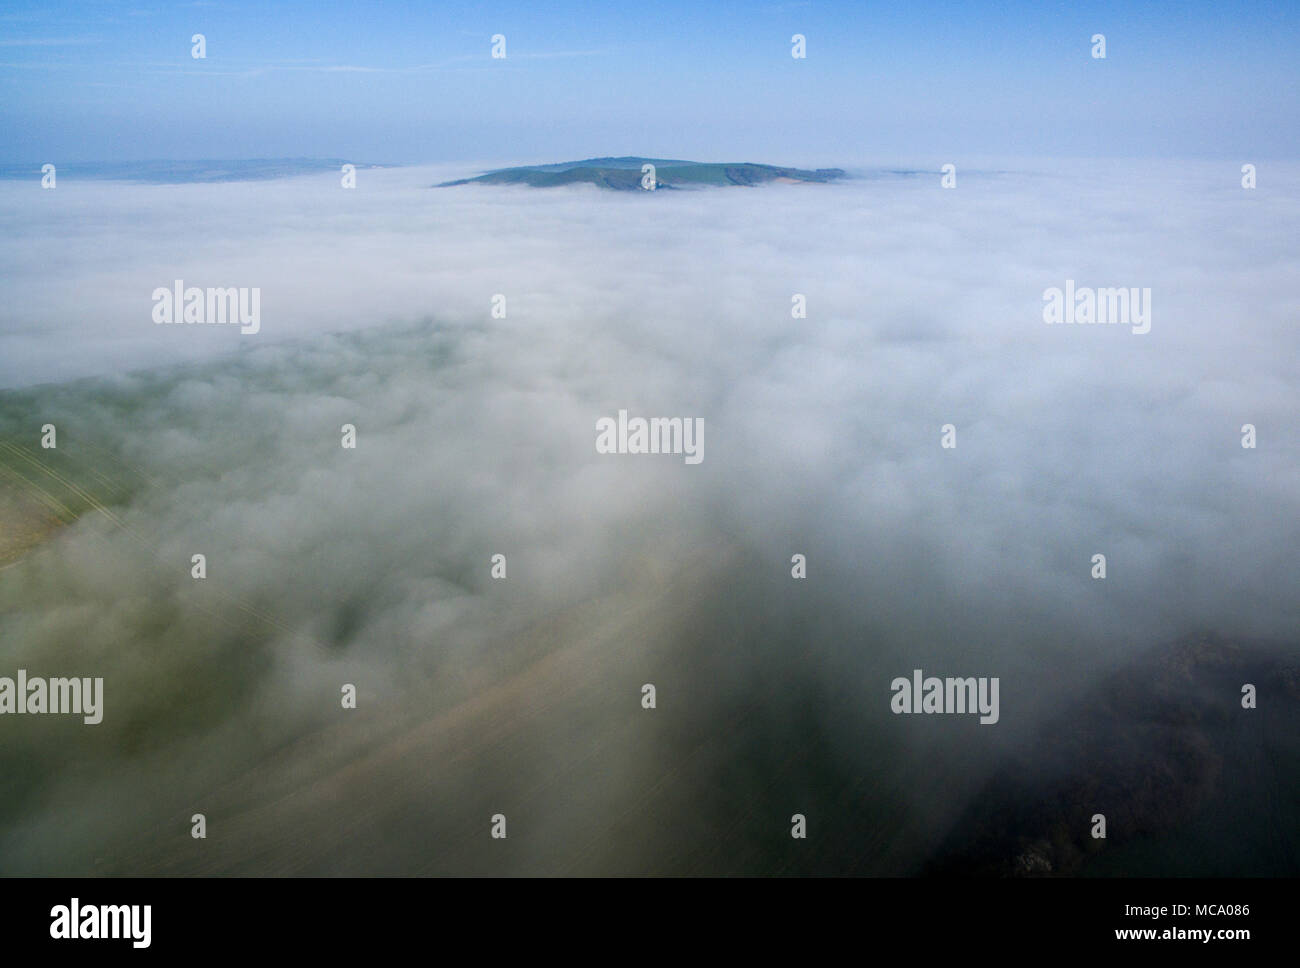 Firle, East Sussex. 14th April 2018. The South Downs emerge from low lying morning mist covering the Low Weald on a bright spring morning. © CAP/Alamy Live News Stock Photo